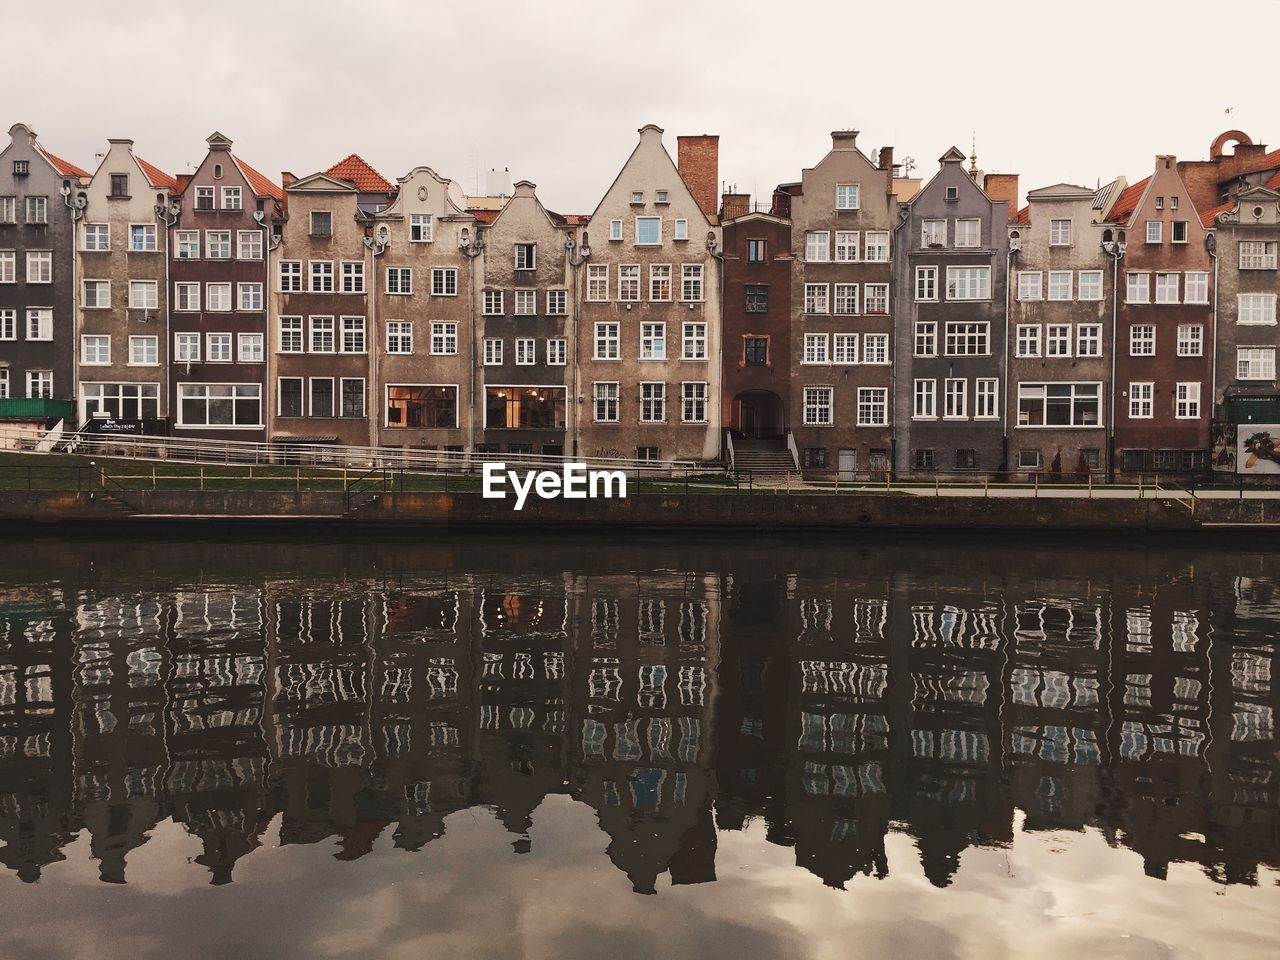 Reflection of buildings in river